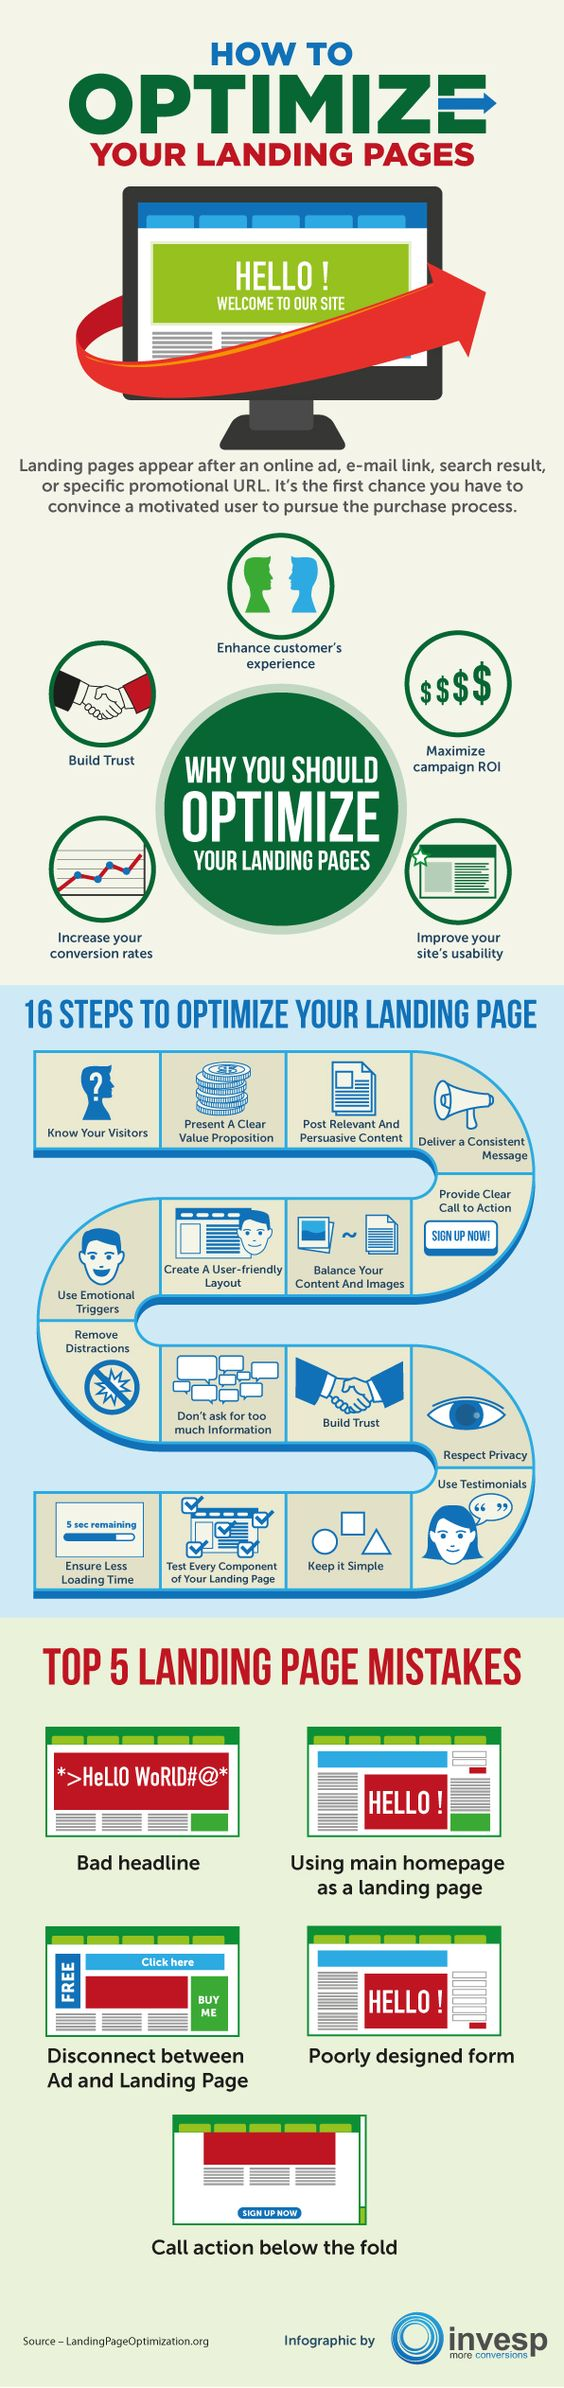 10 Copywriting Tips for a More Effective Landing Page. Infographic: